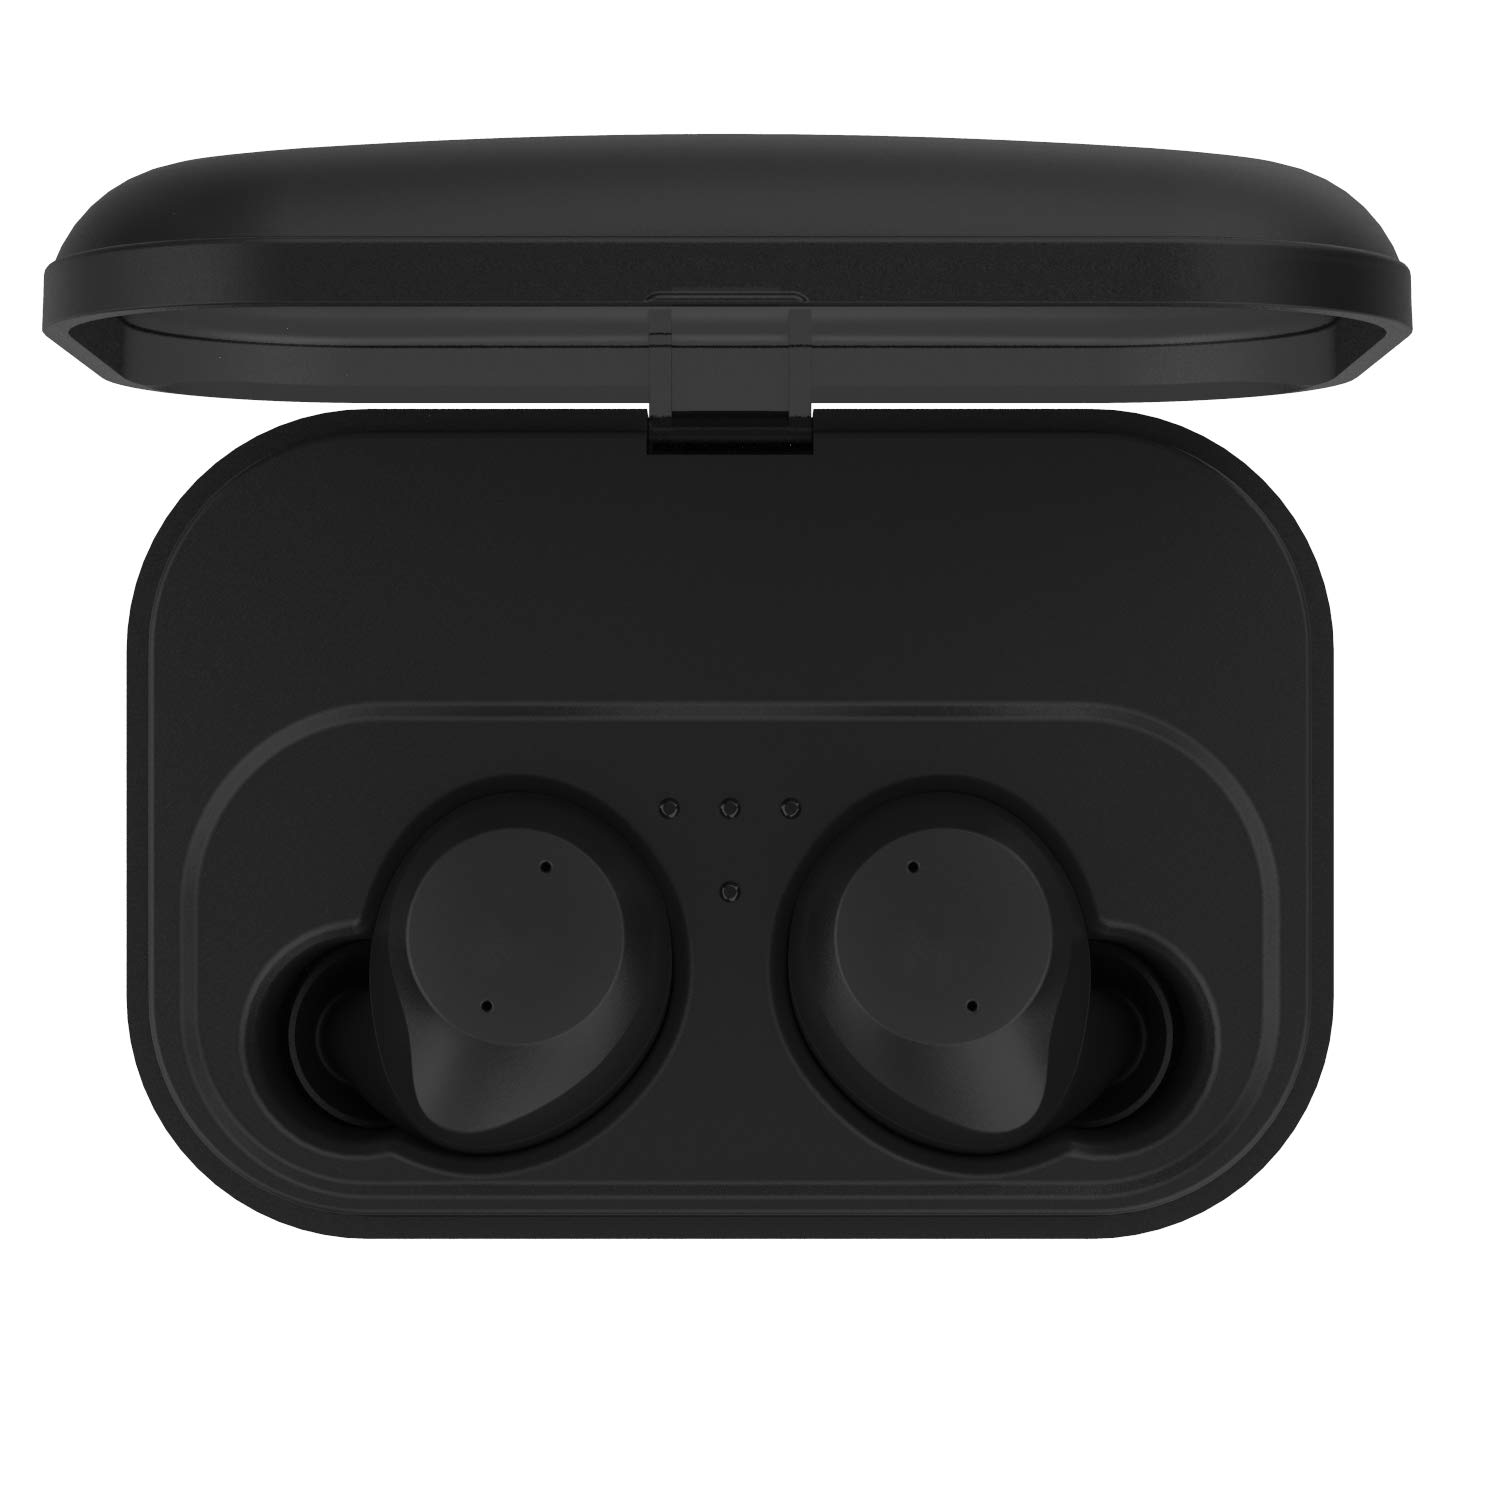 True Wireless Earbuds Bluetooth 5.0 Headphones,TWS Stereo Sound Earphones with 2200mah Charging Case Box Bulid-in Mic IPX7 Waterproof in-Ear Earbuds for iPhone Android Phone